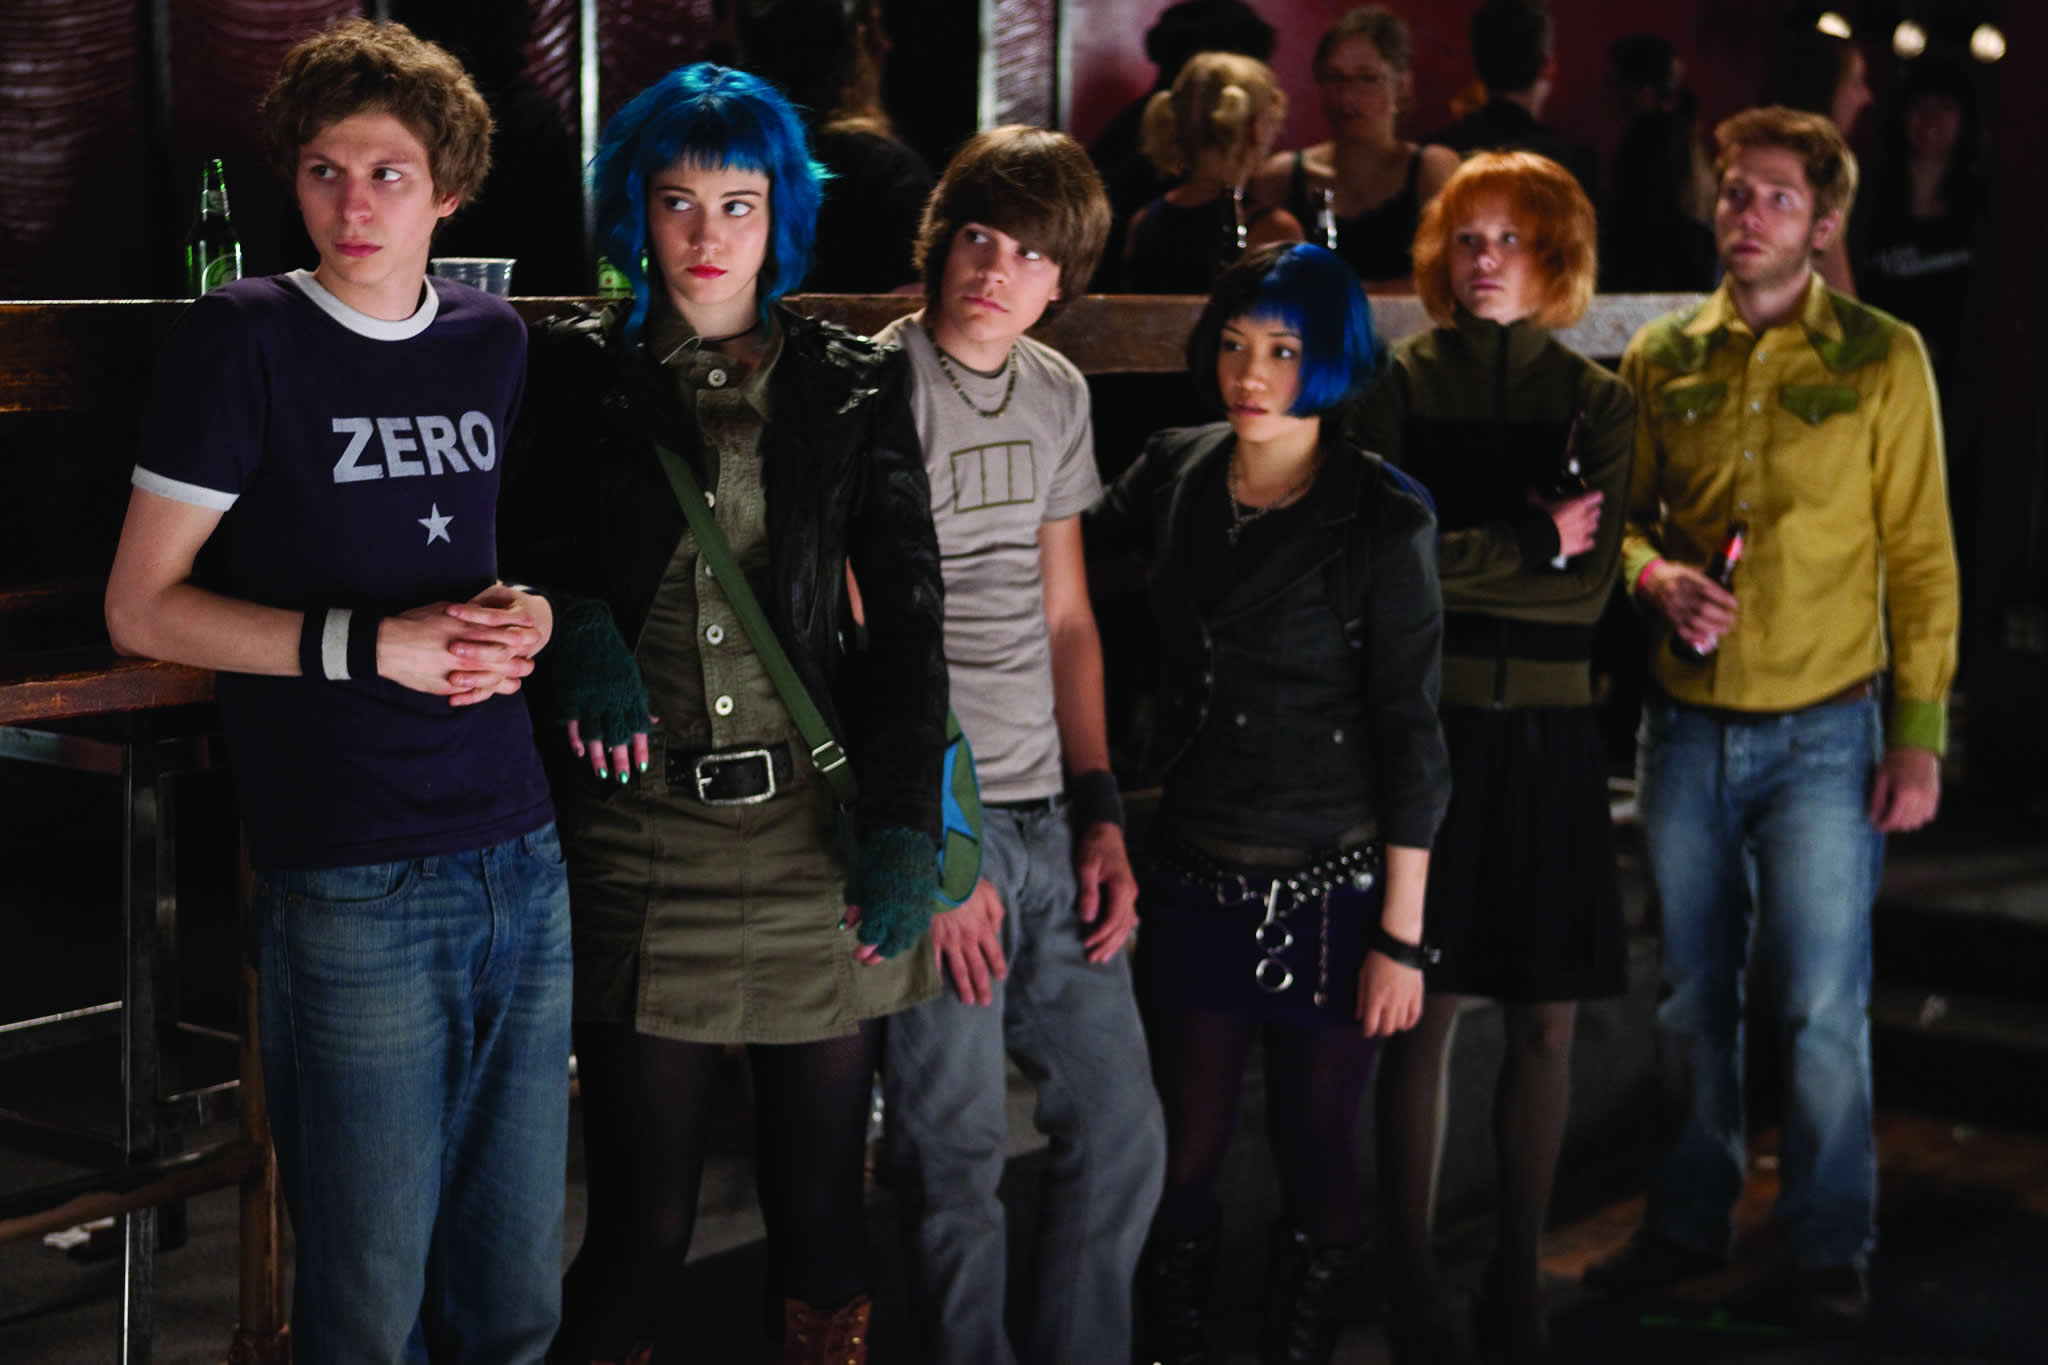 scott-pilgrim-vs-the-world-michael-cera-smashing-pumpkins.jpg (2048×1365)